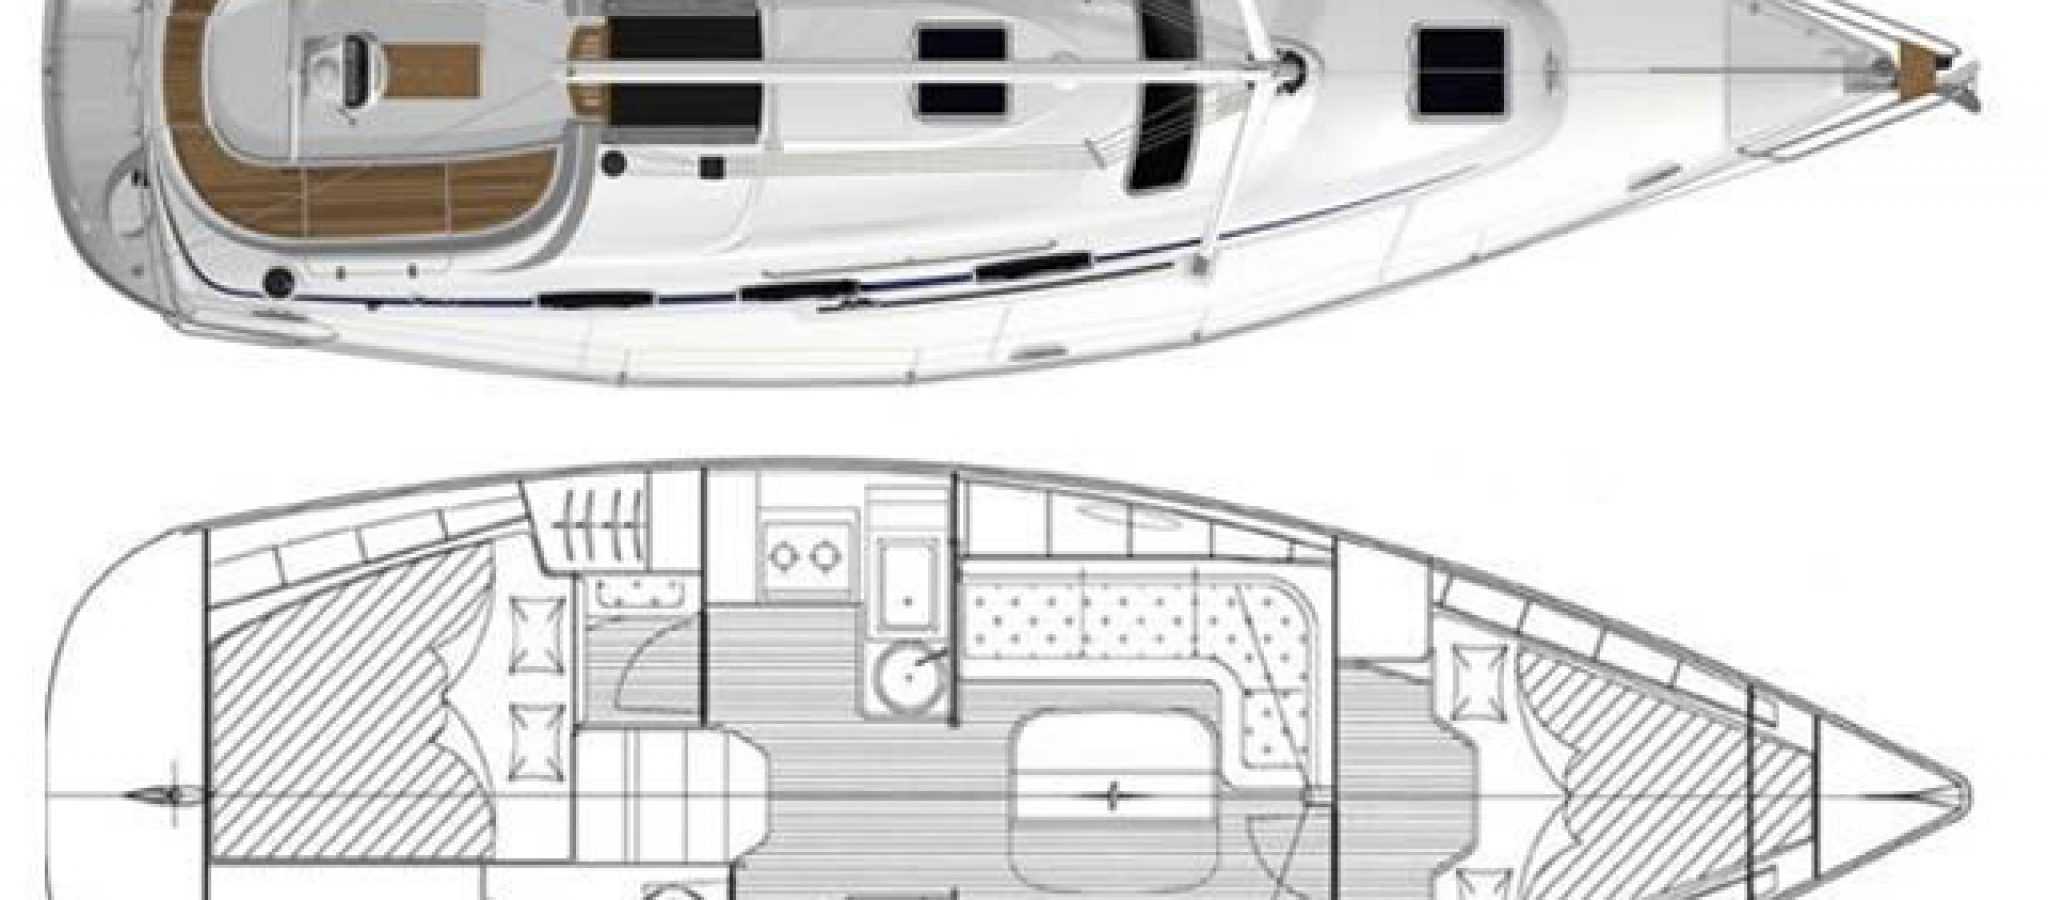 Bavaria 33 cruiser plan 2 cabines